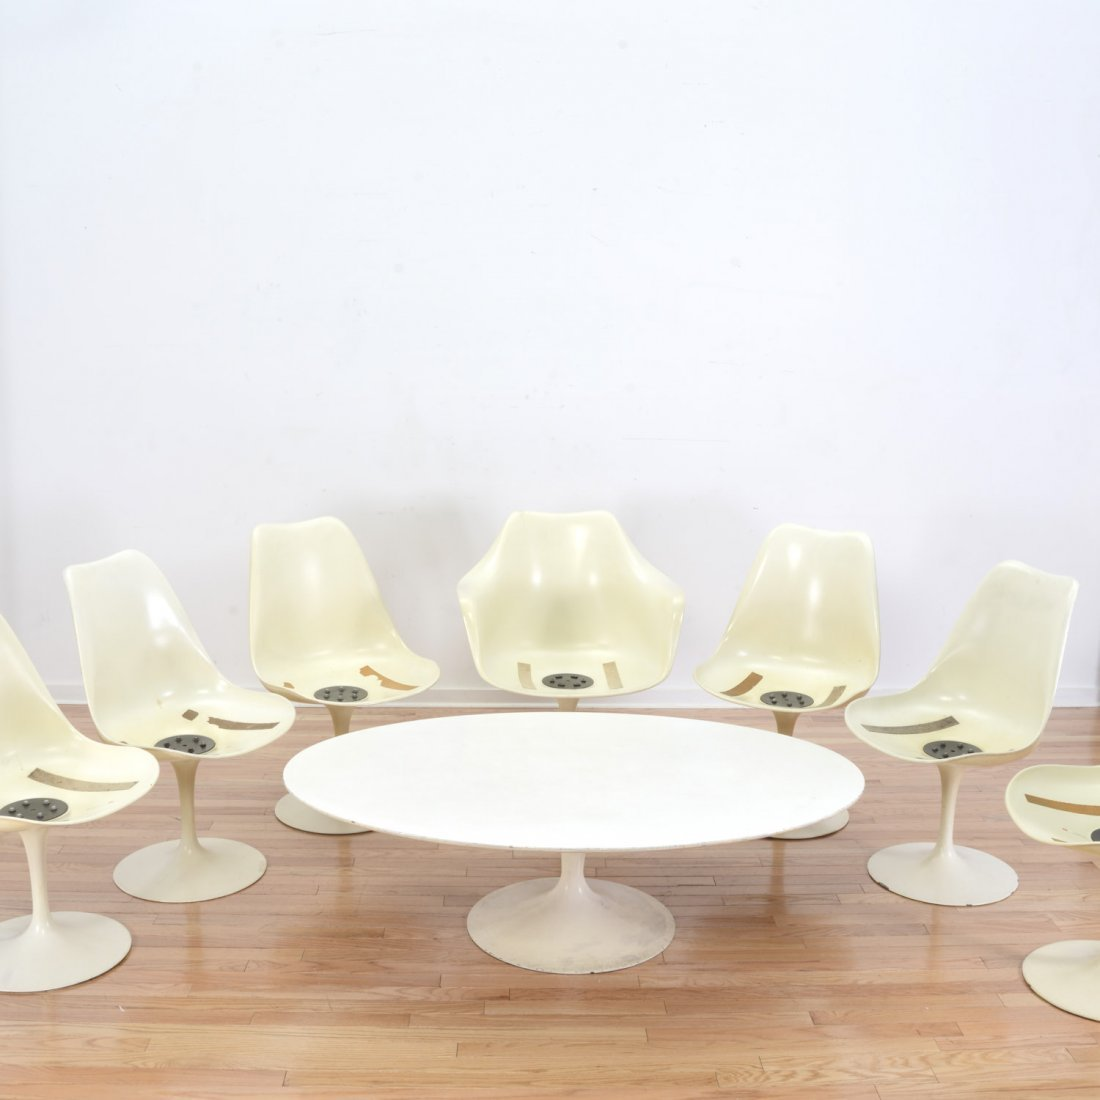 (7) Eero Saarinen tulip chairs and coffee table